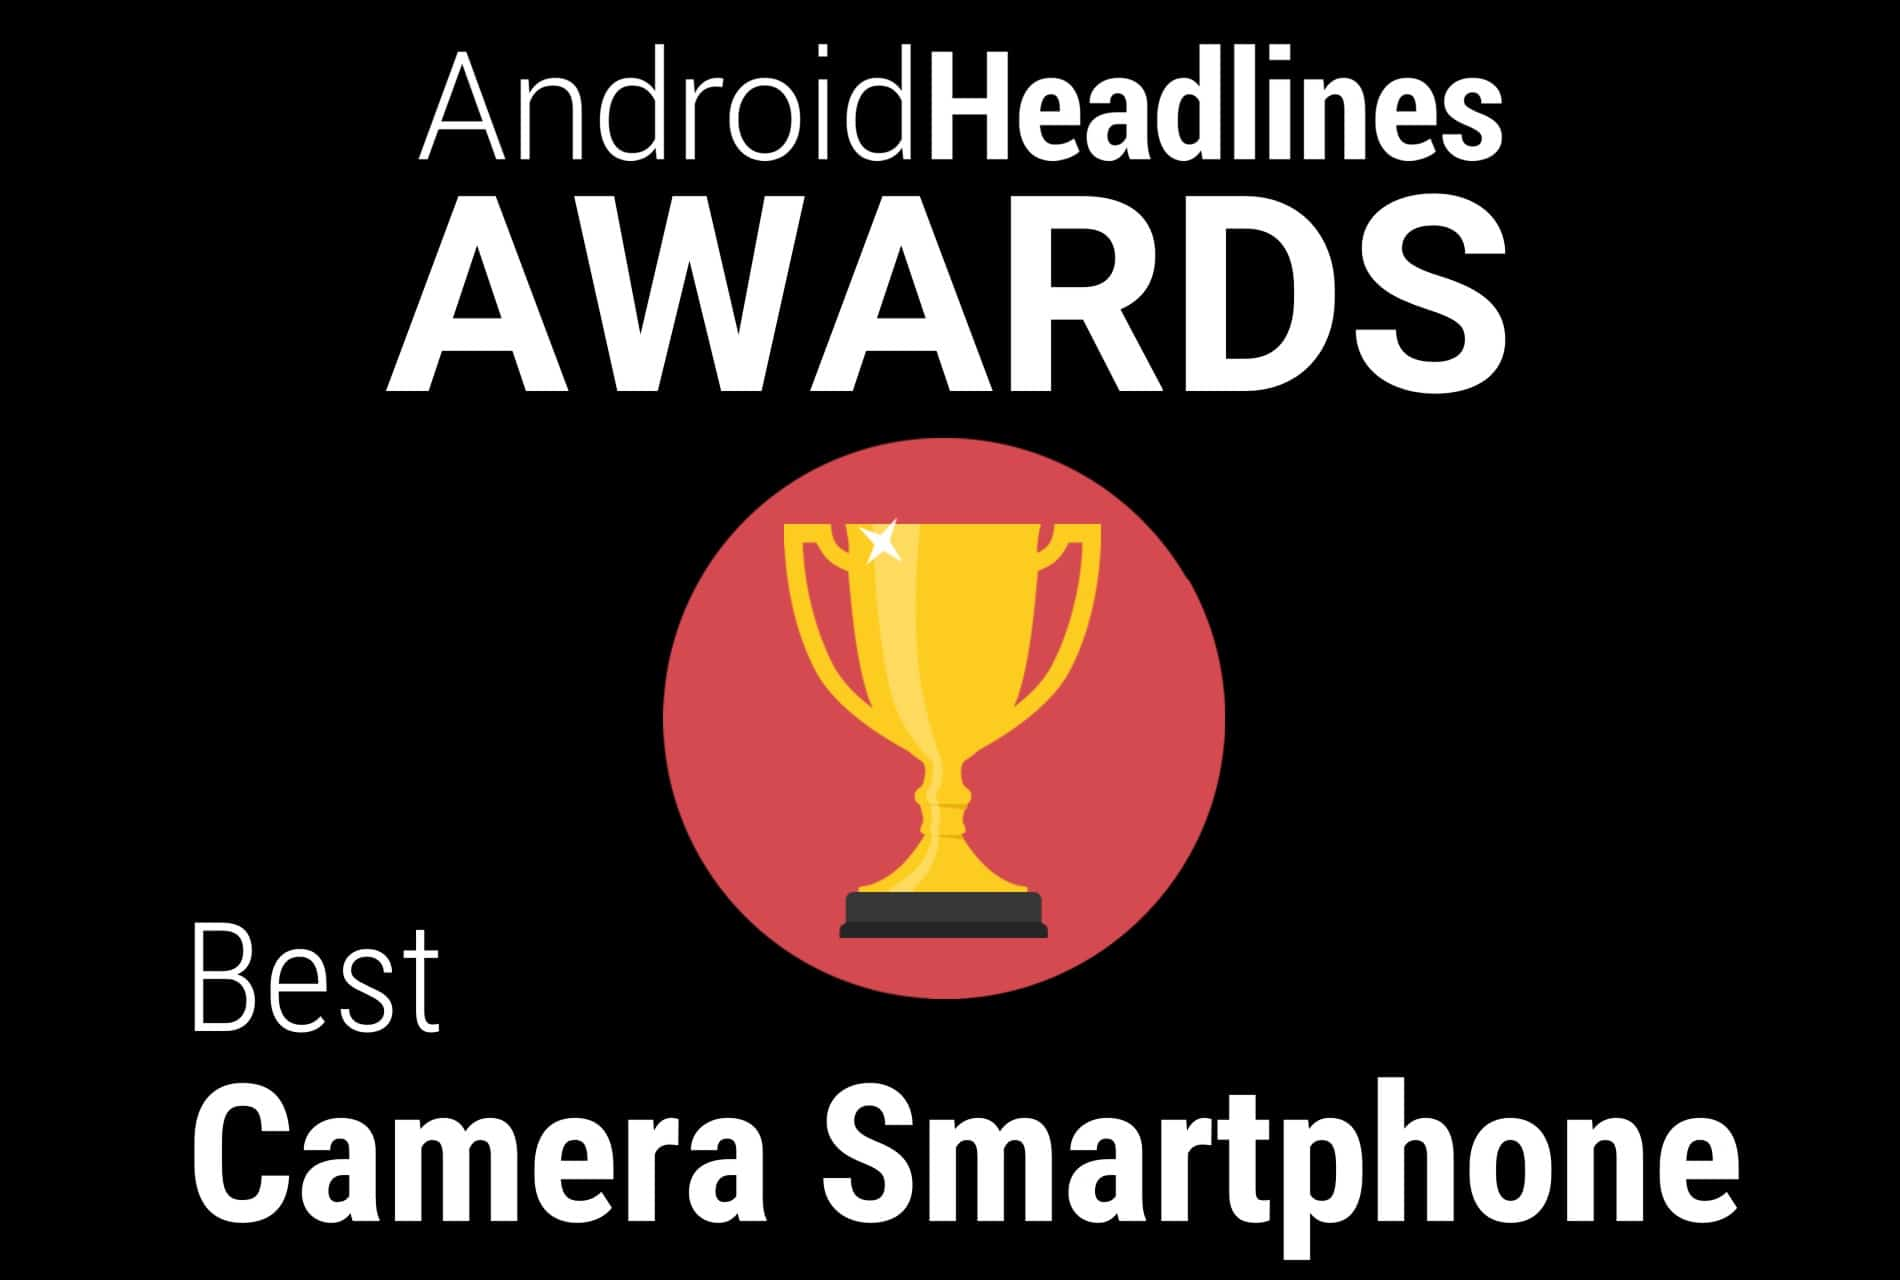 AH Awards Best Camera Smartphone